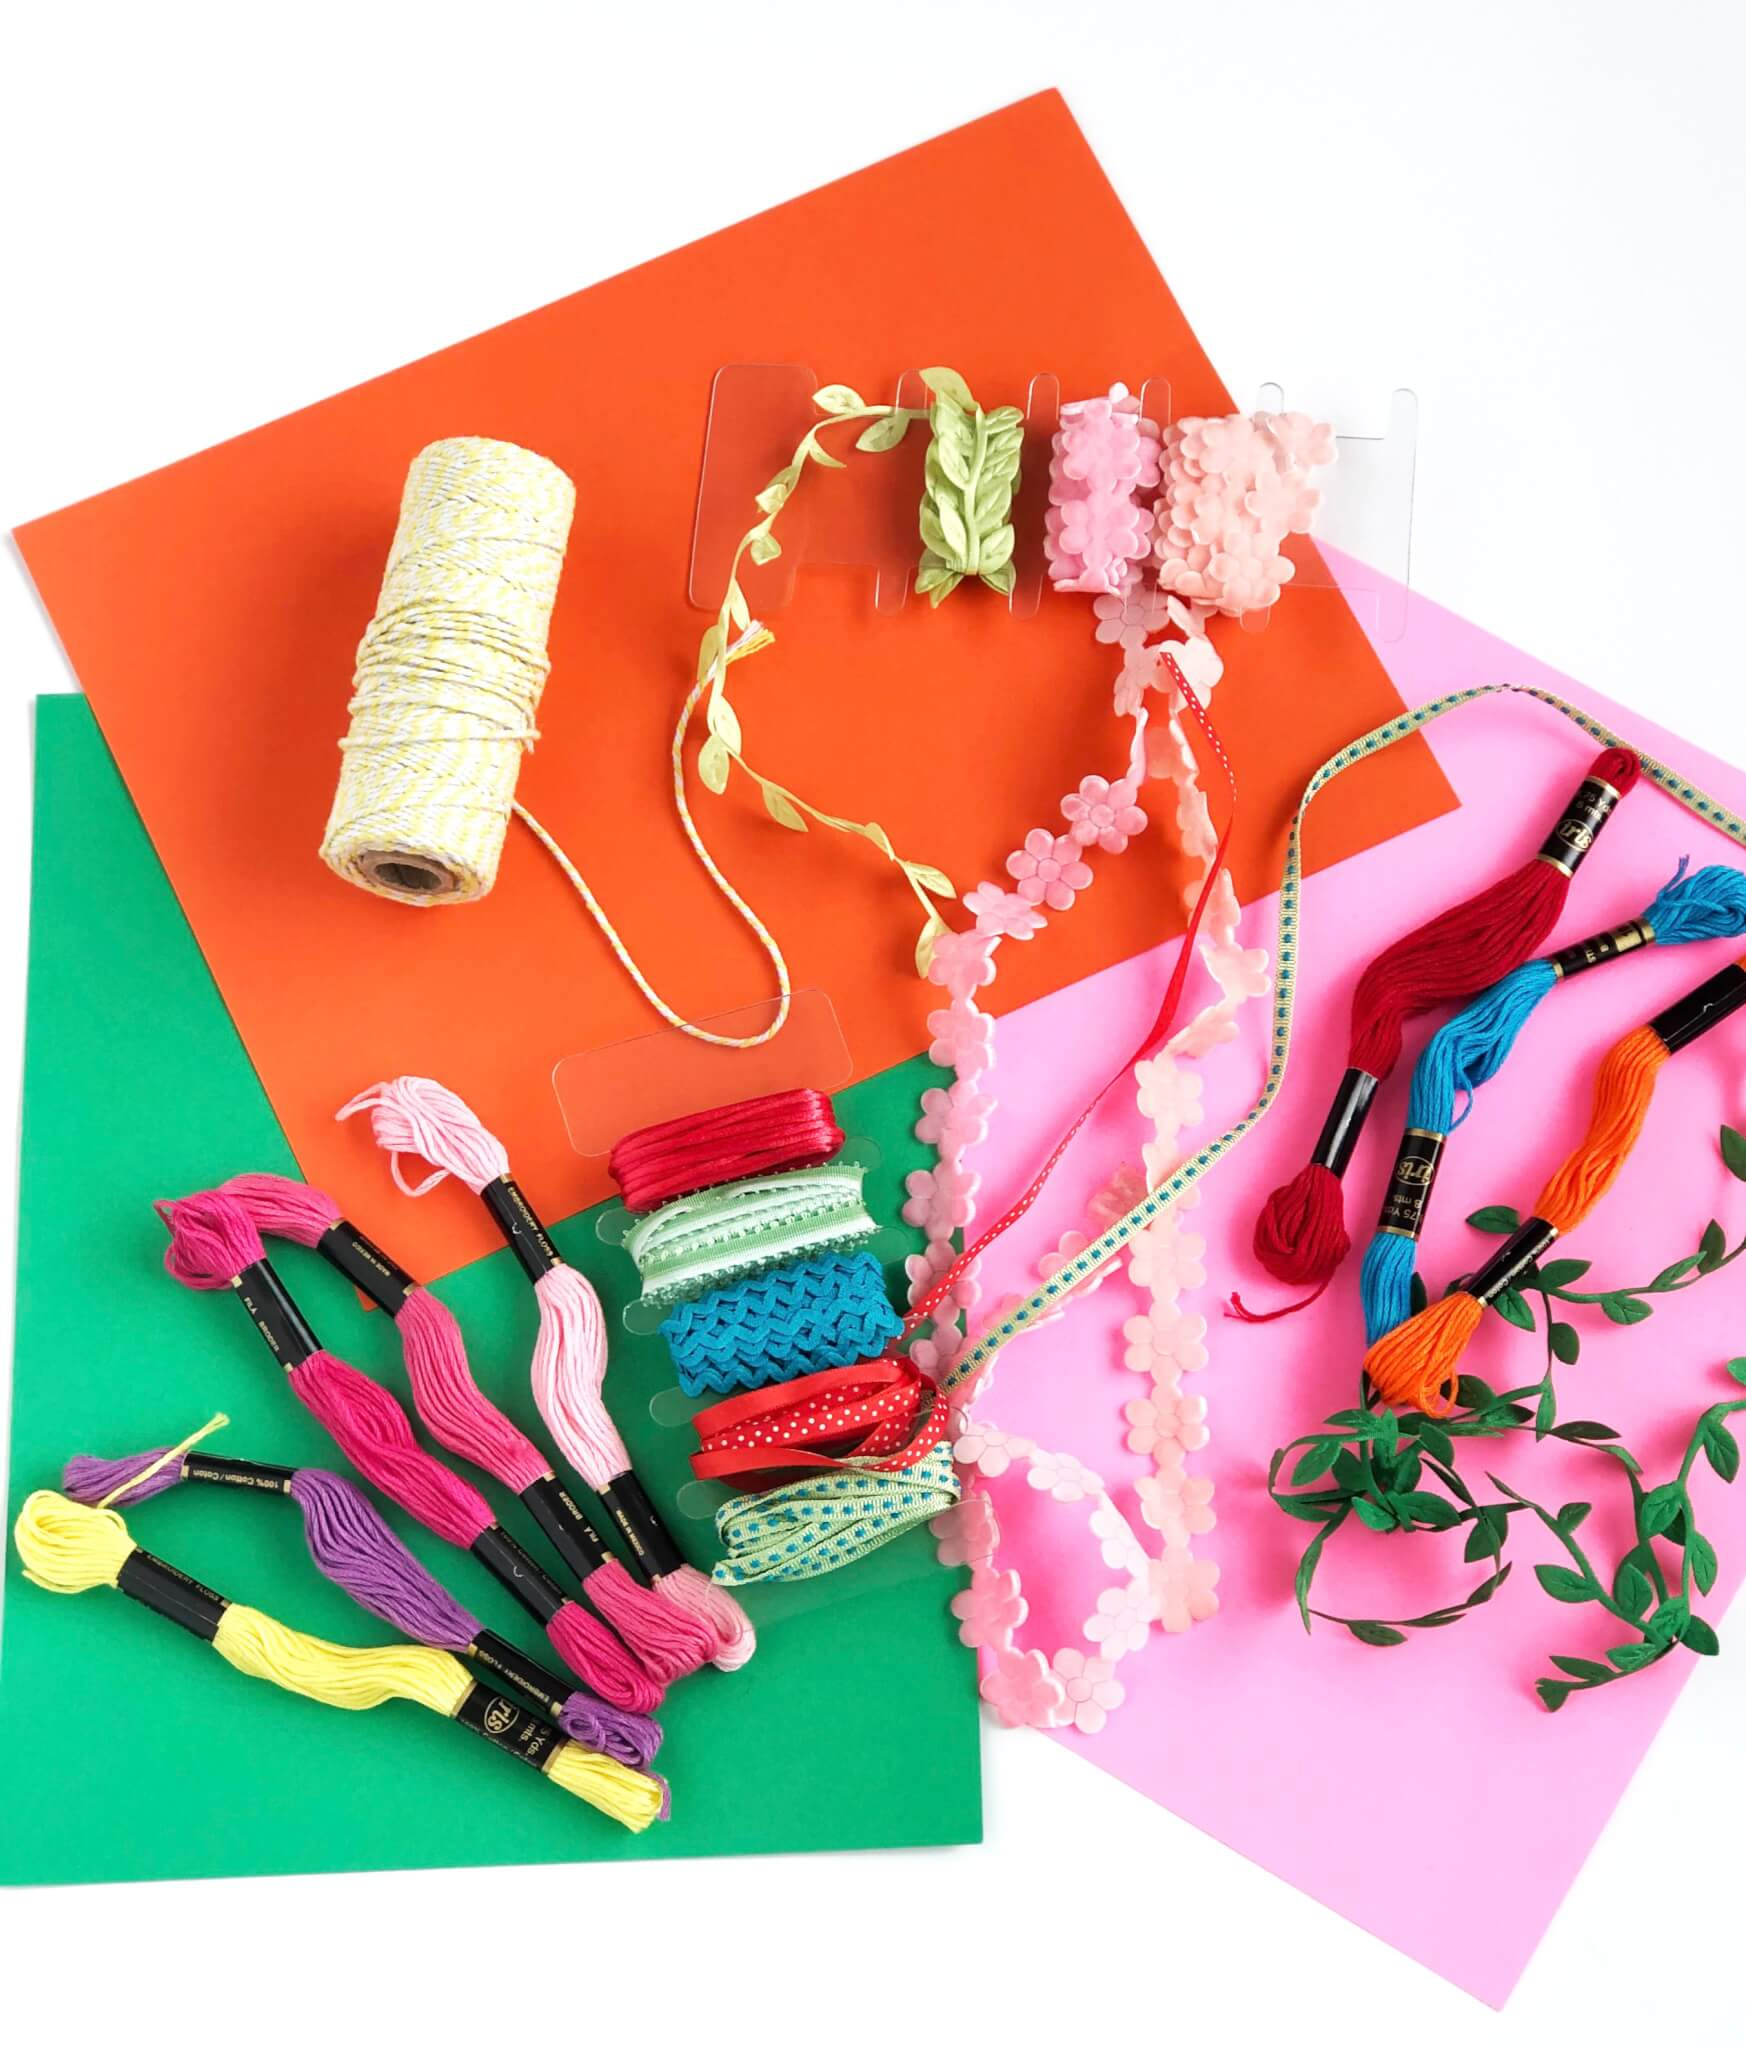 Craft supply with baker's twine, ribbons and embroidery thread